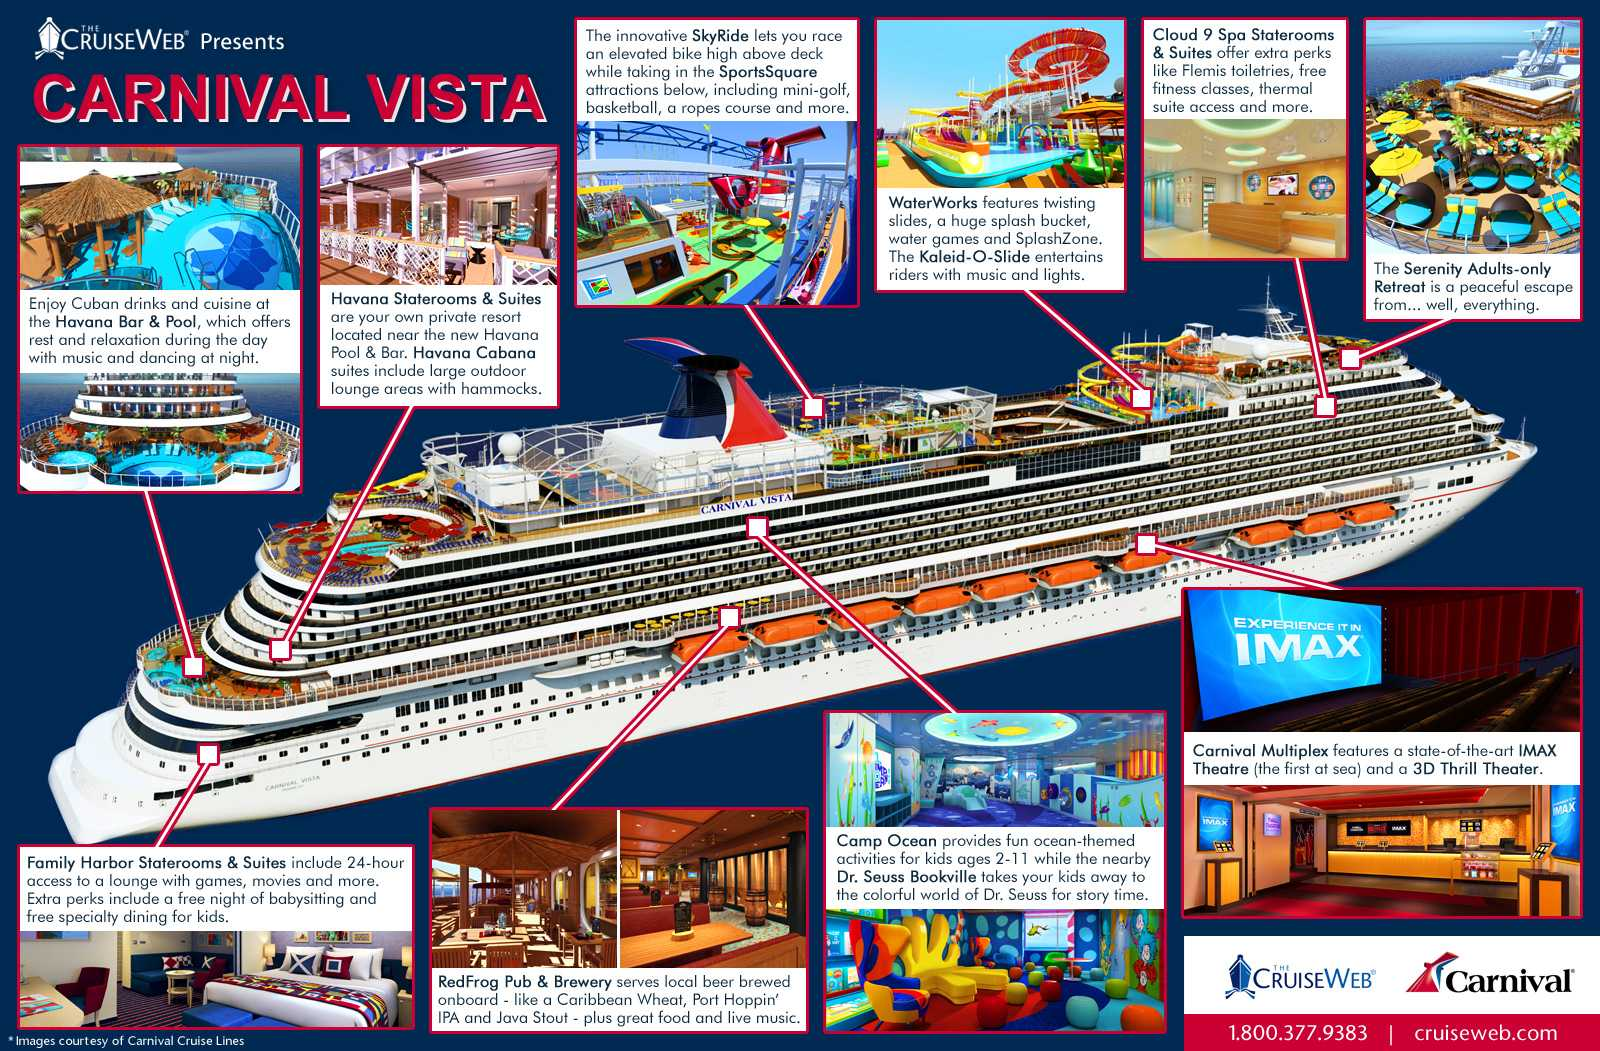 Badezimmerspiegel Theater Cruise Web Presents Carnival Vista Cruise Ship Infographic Viral